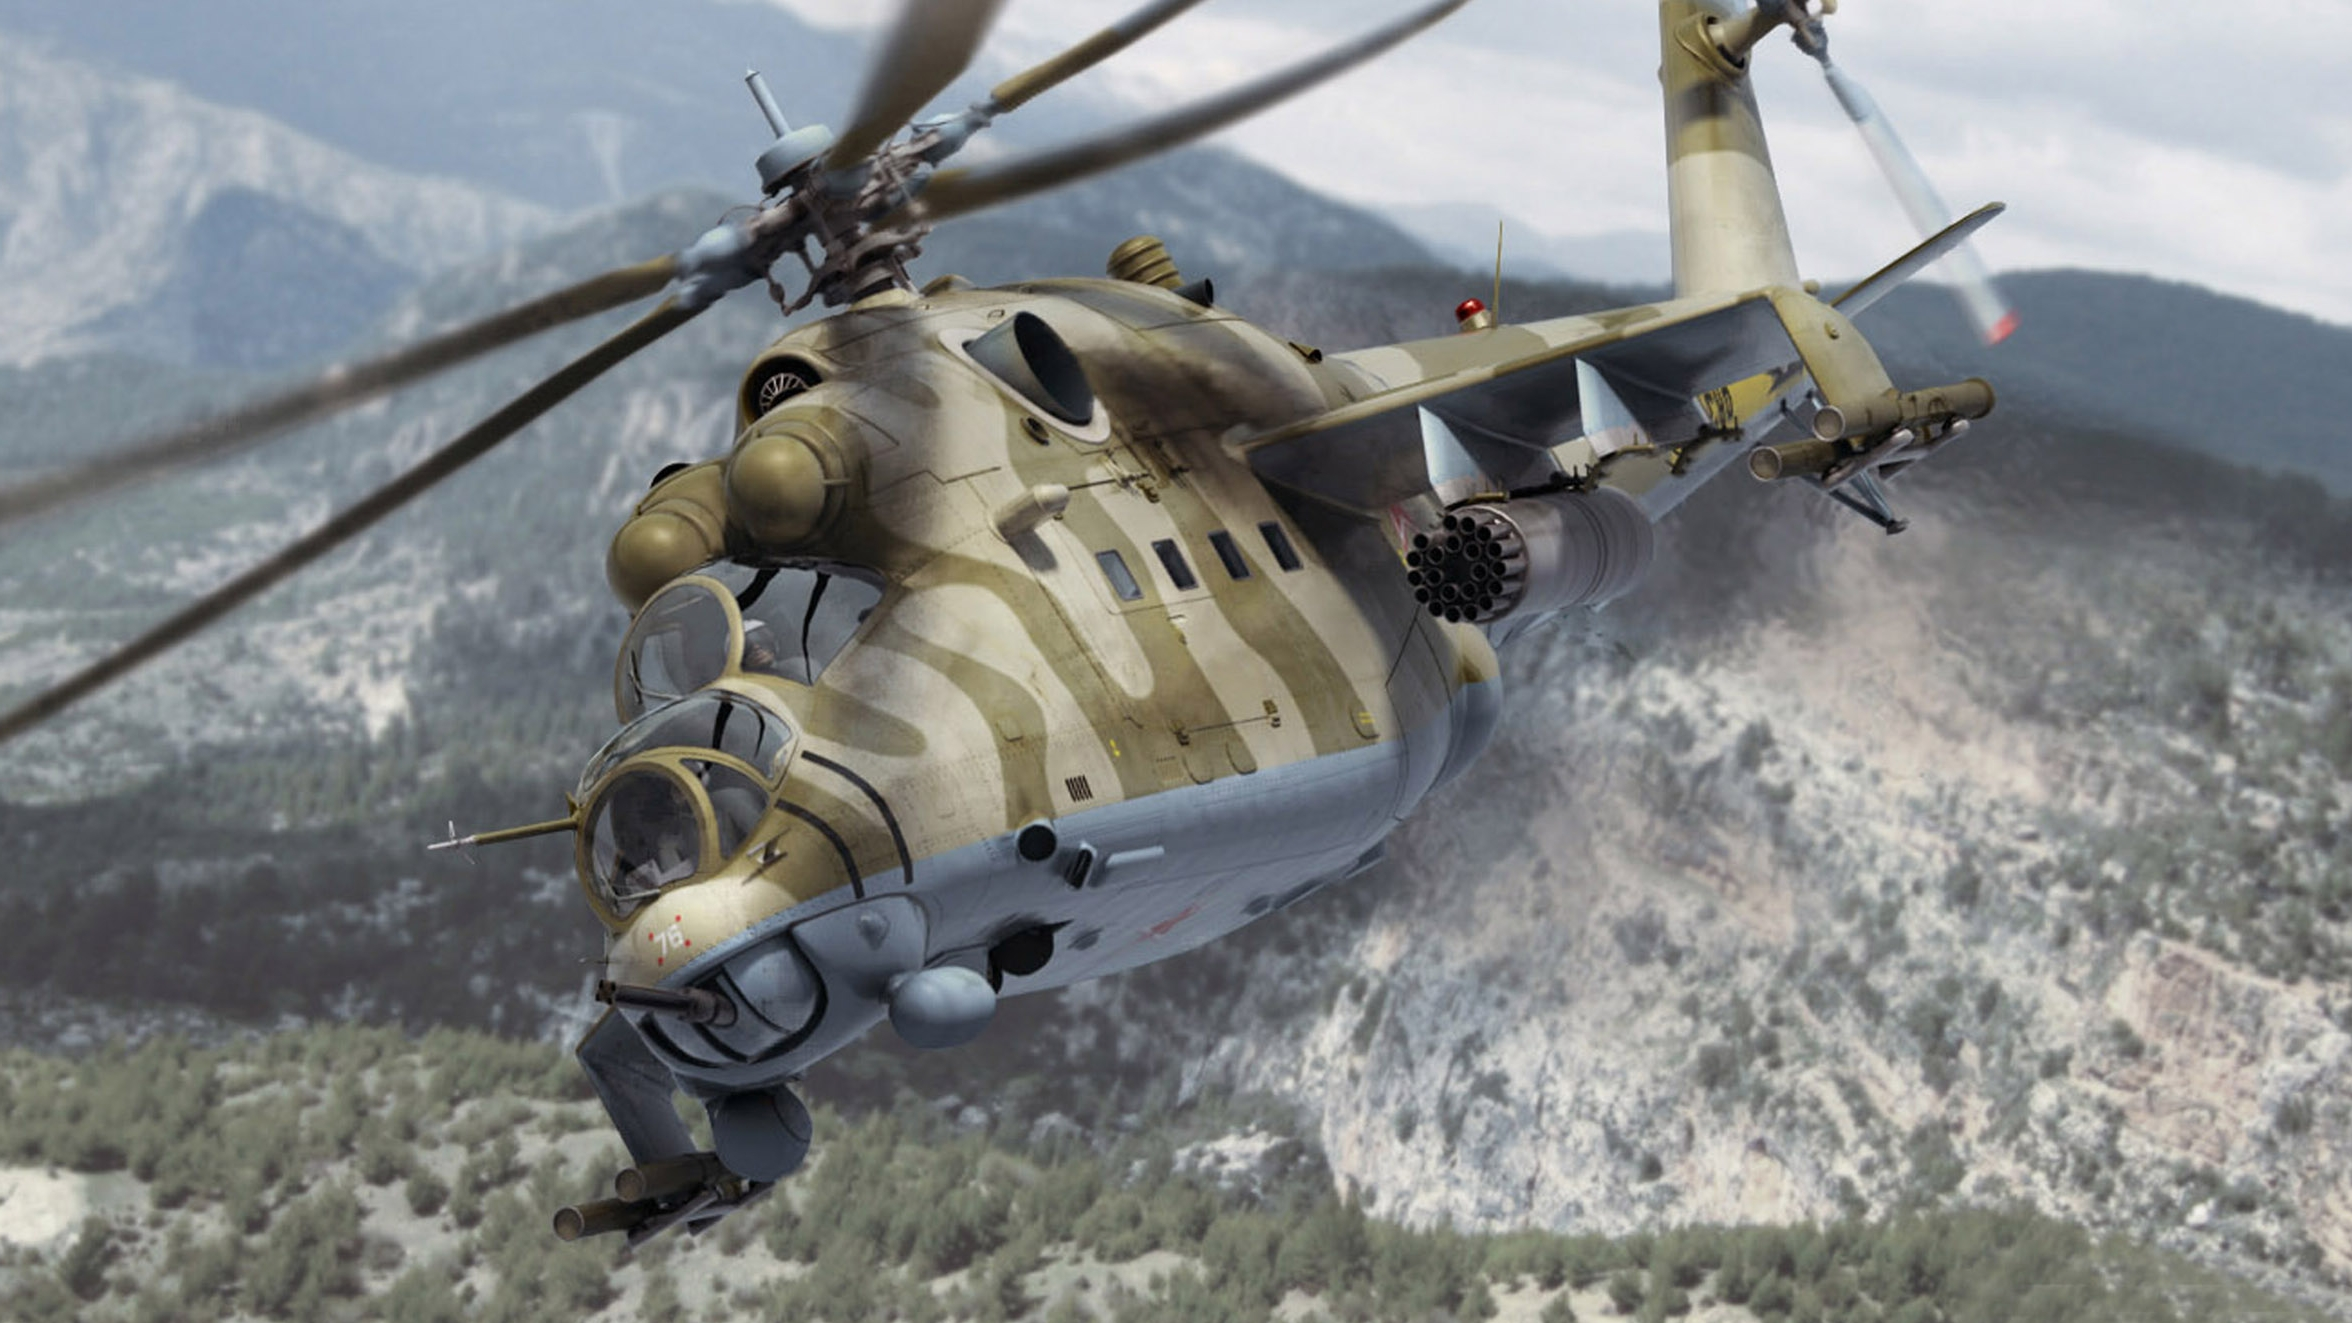 video games aircraft helicopters hind vehicles Mi-24